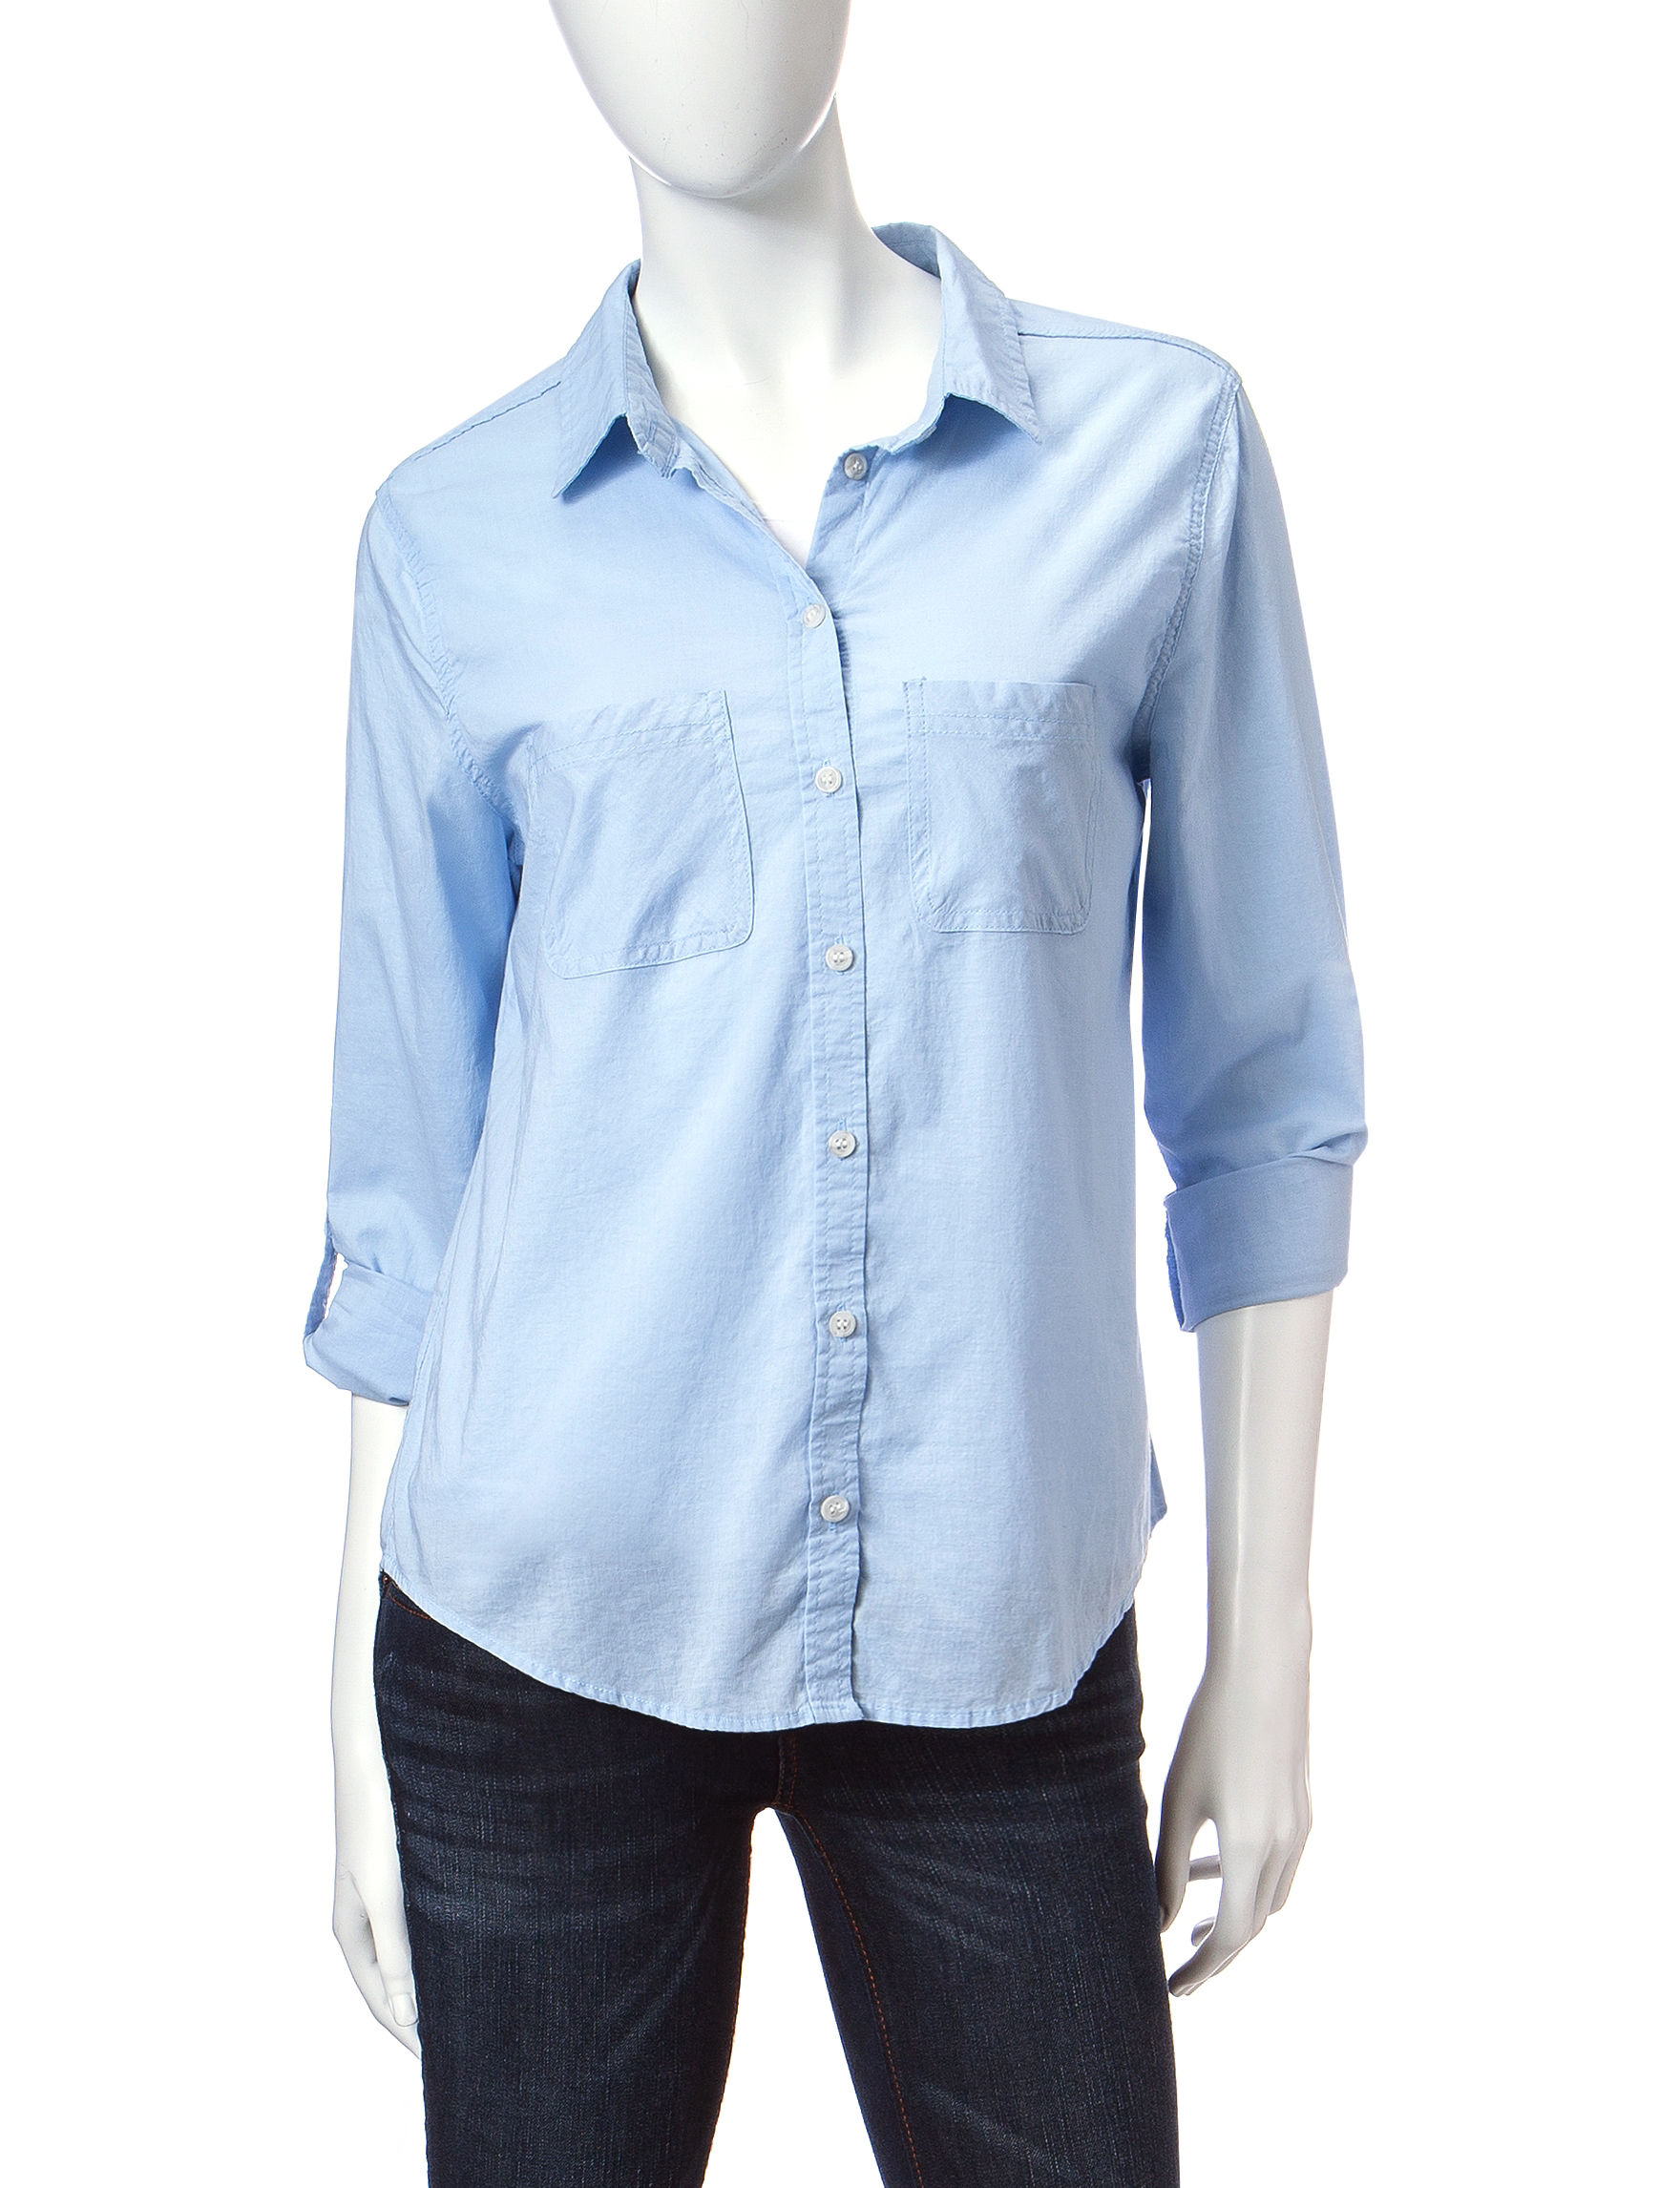 Wishful Park Light Blue Shirts & Blouses